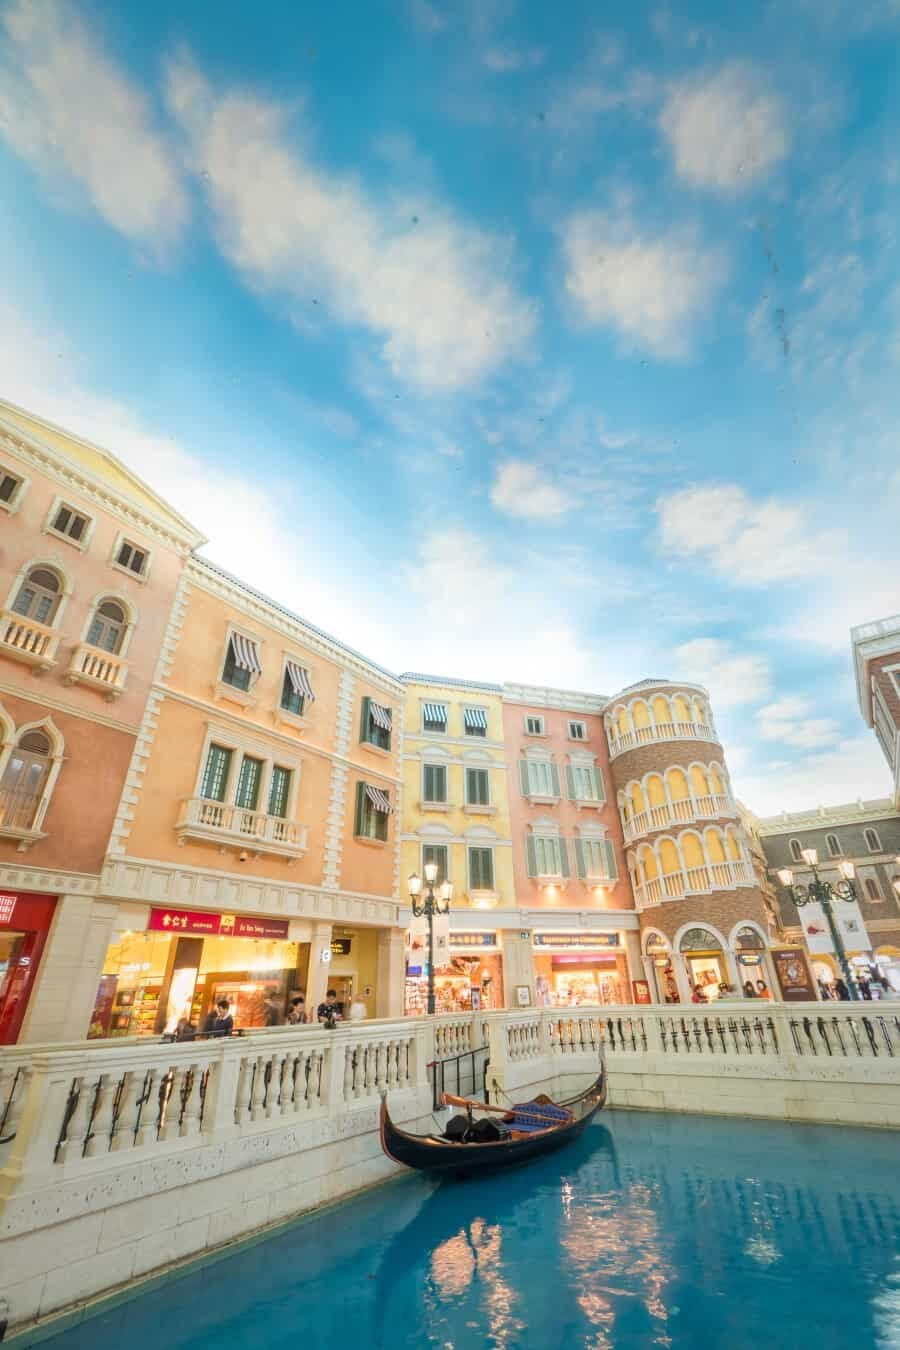 The Venetian Macao - Macao photography locations